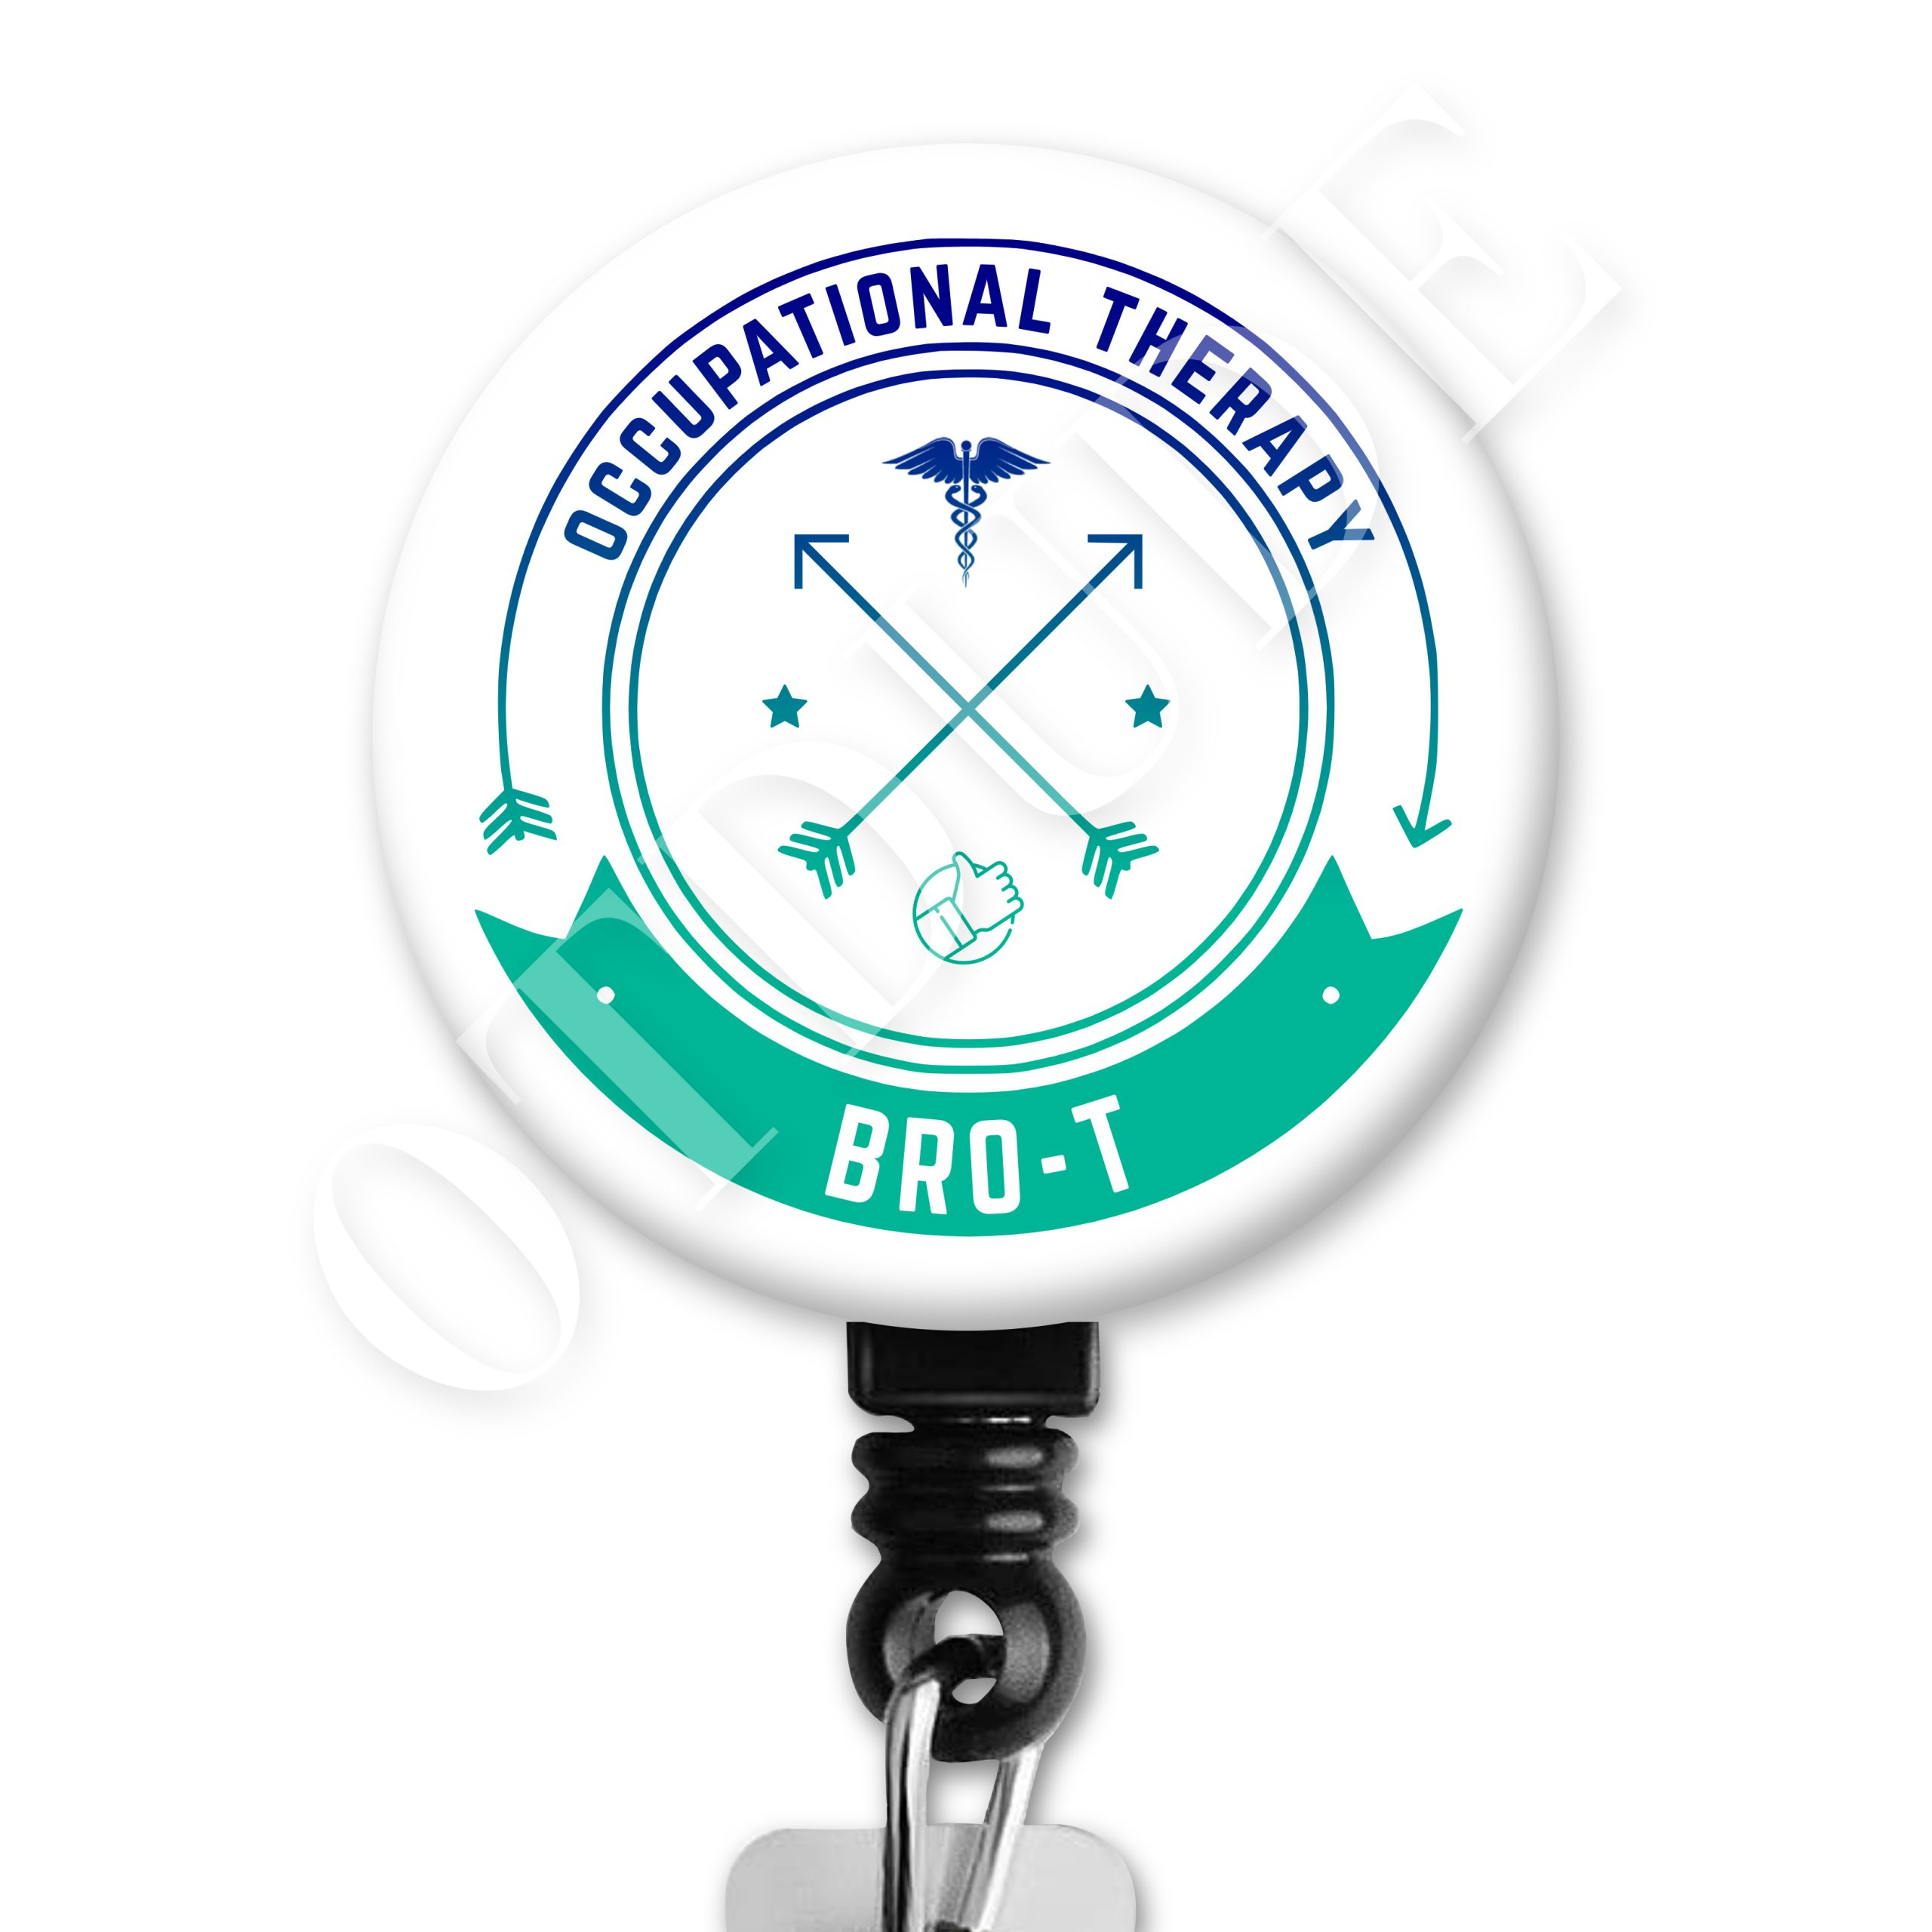 Bro-T / BrOT - Occupational Therapy ID Badge Reel